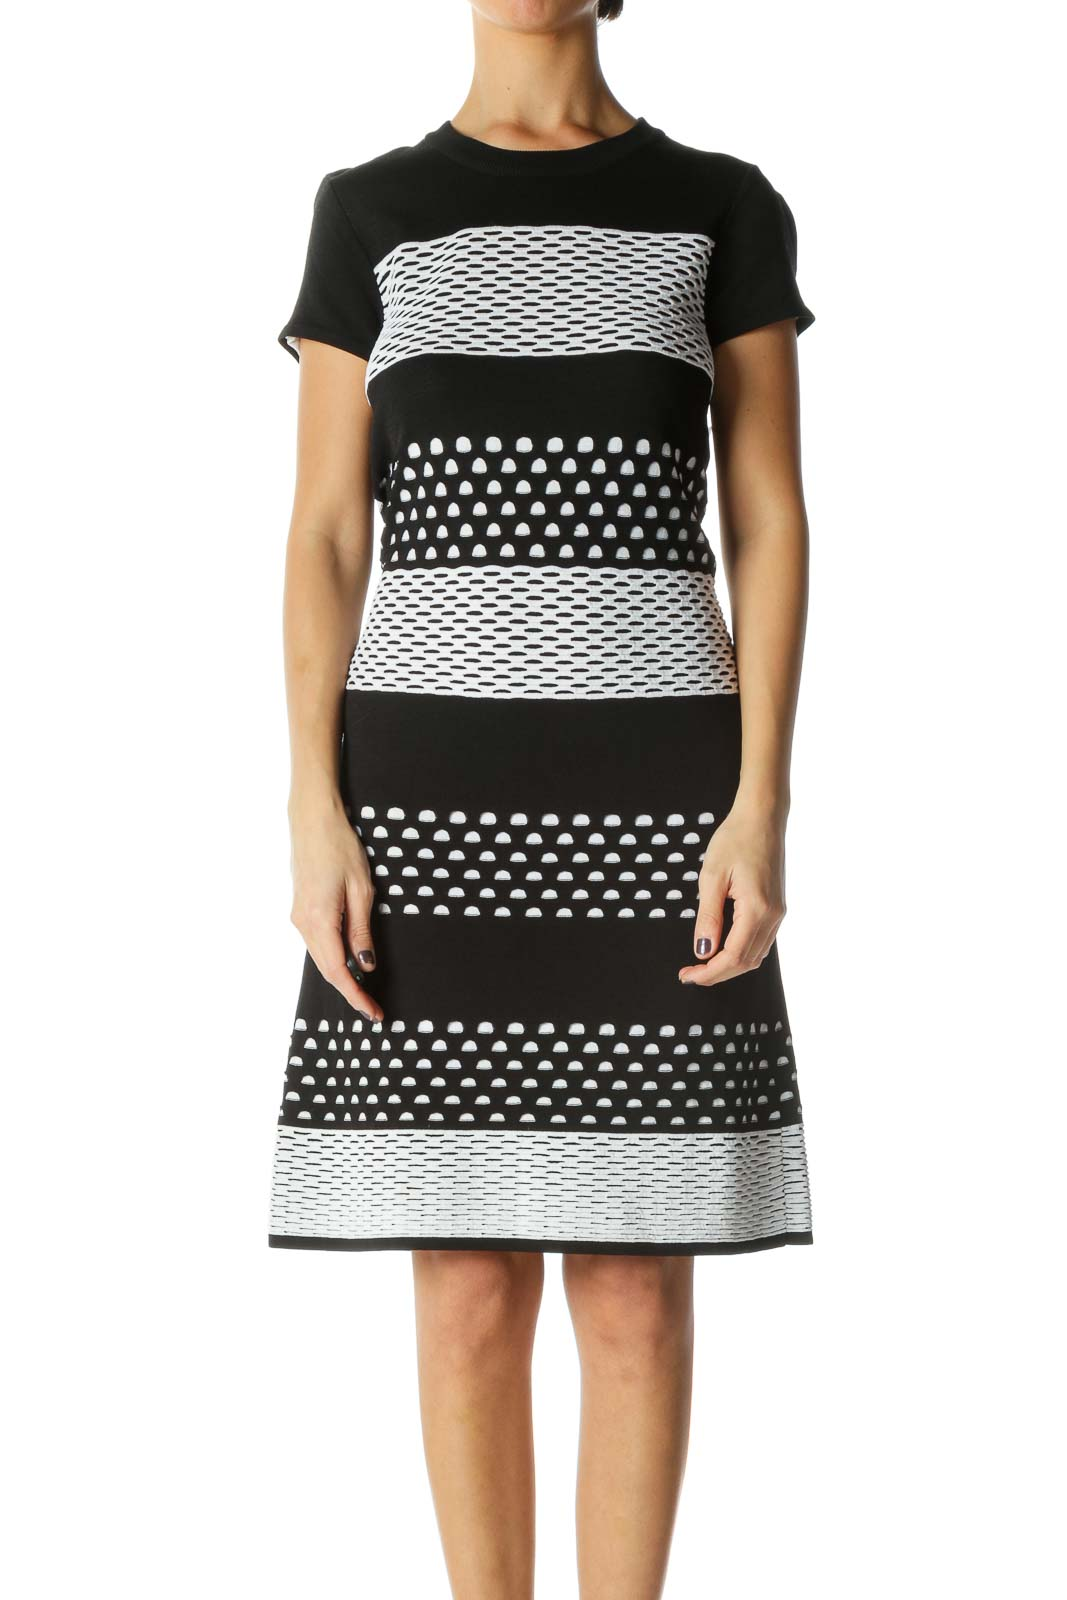 Black and White Knit Dress [S] Front